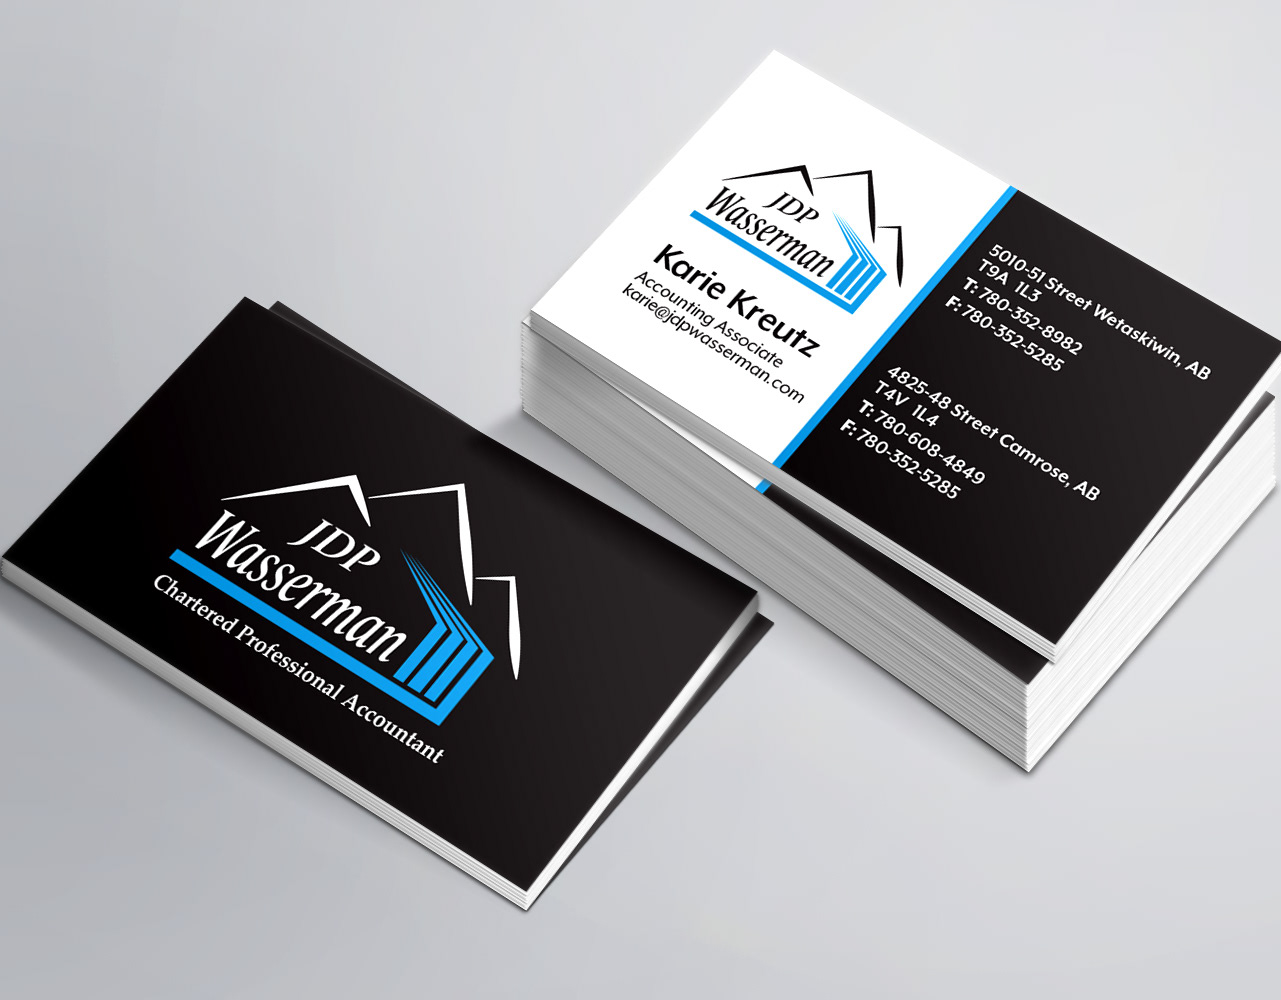 Steven Paslawsky Jdp Wasserman Business Cards